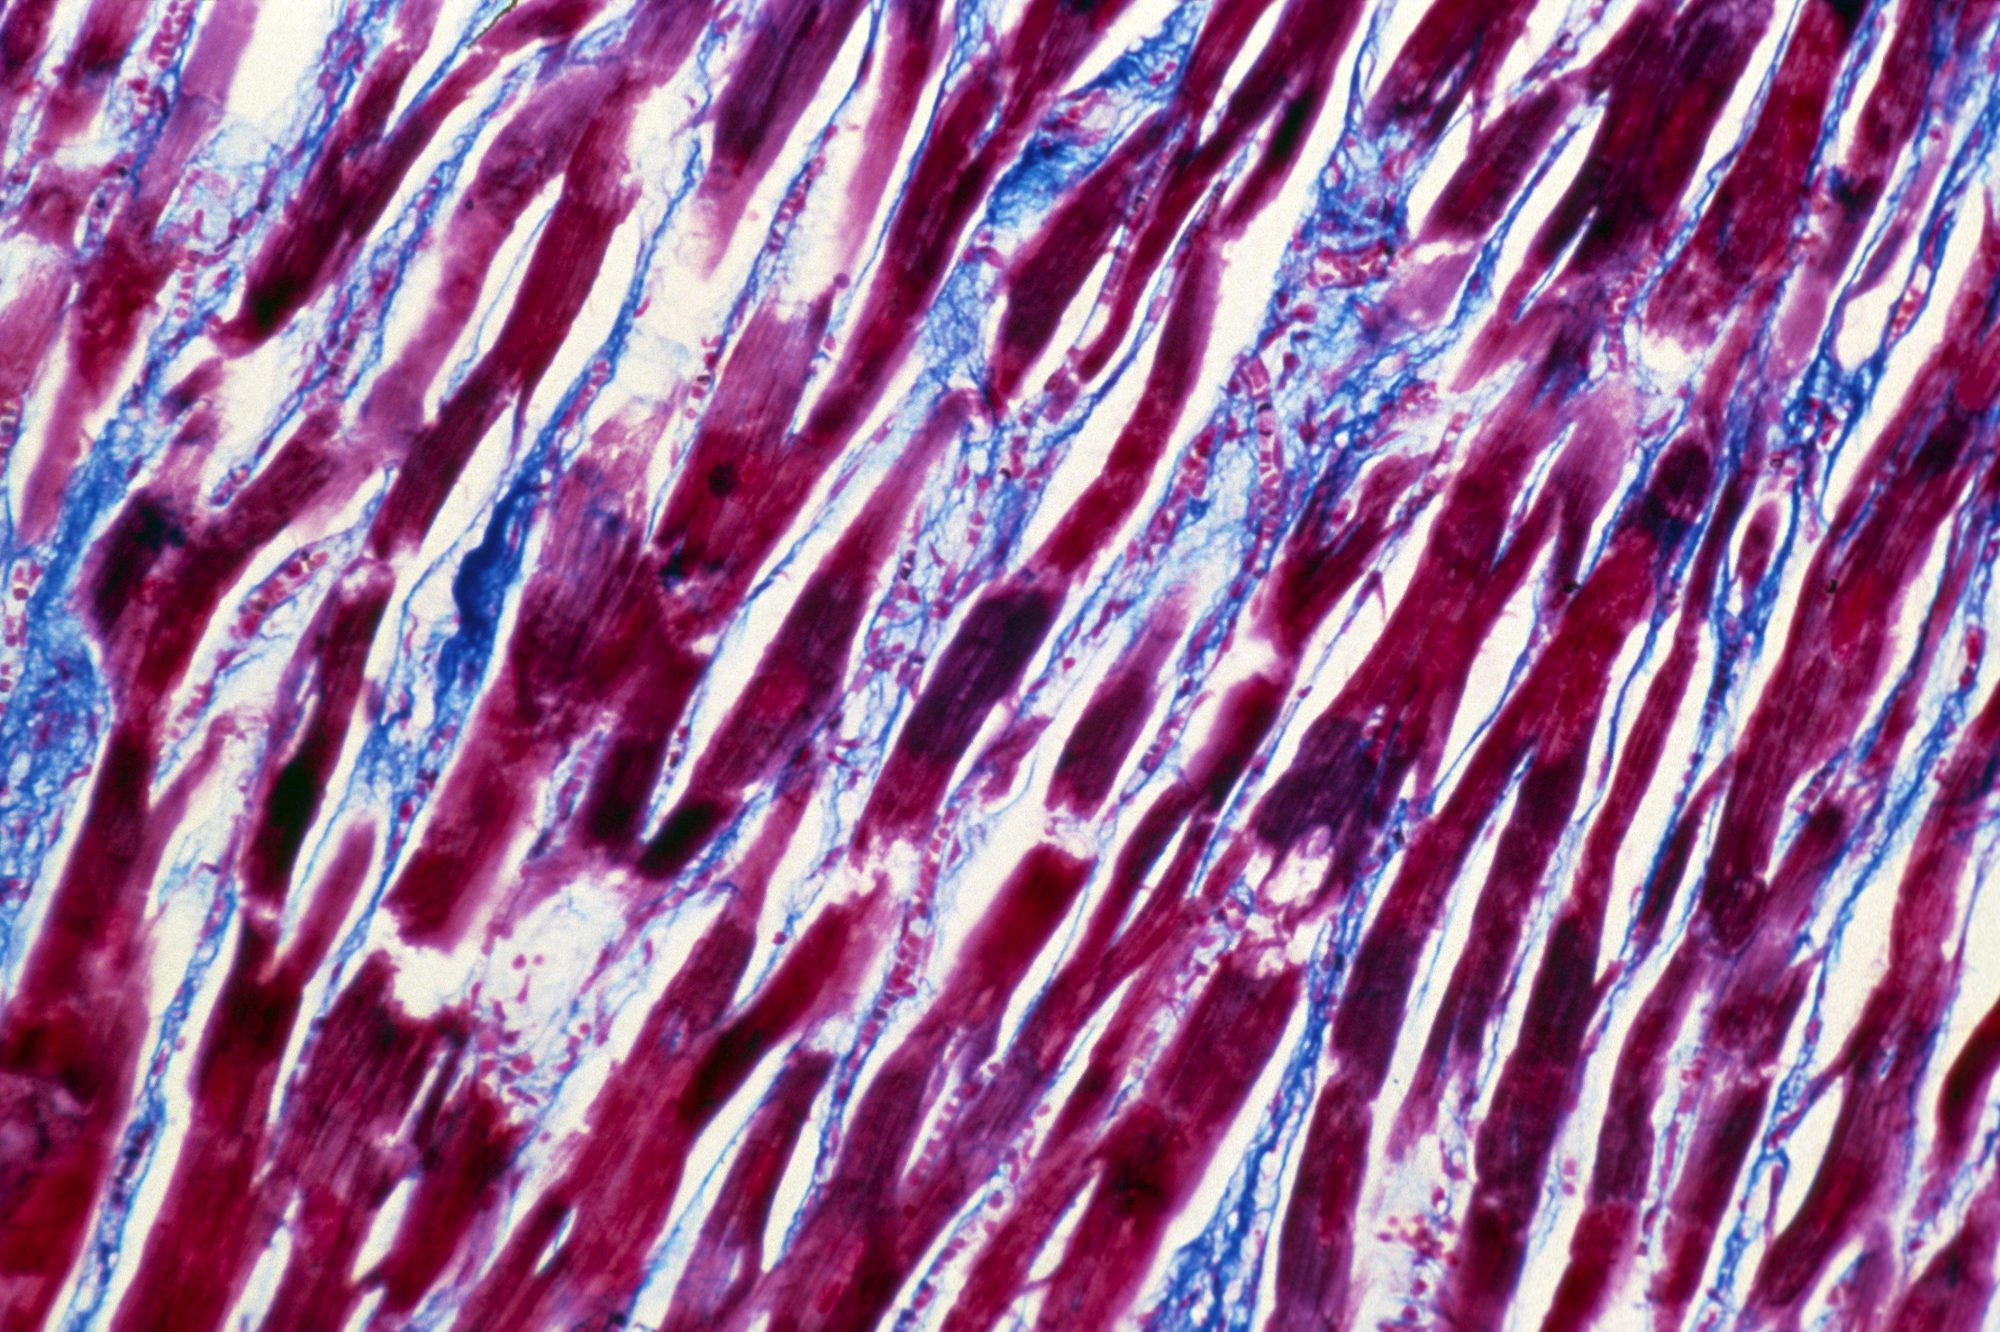 M of inflamed cardiac muscle (myocarditis)